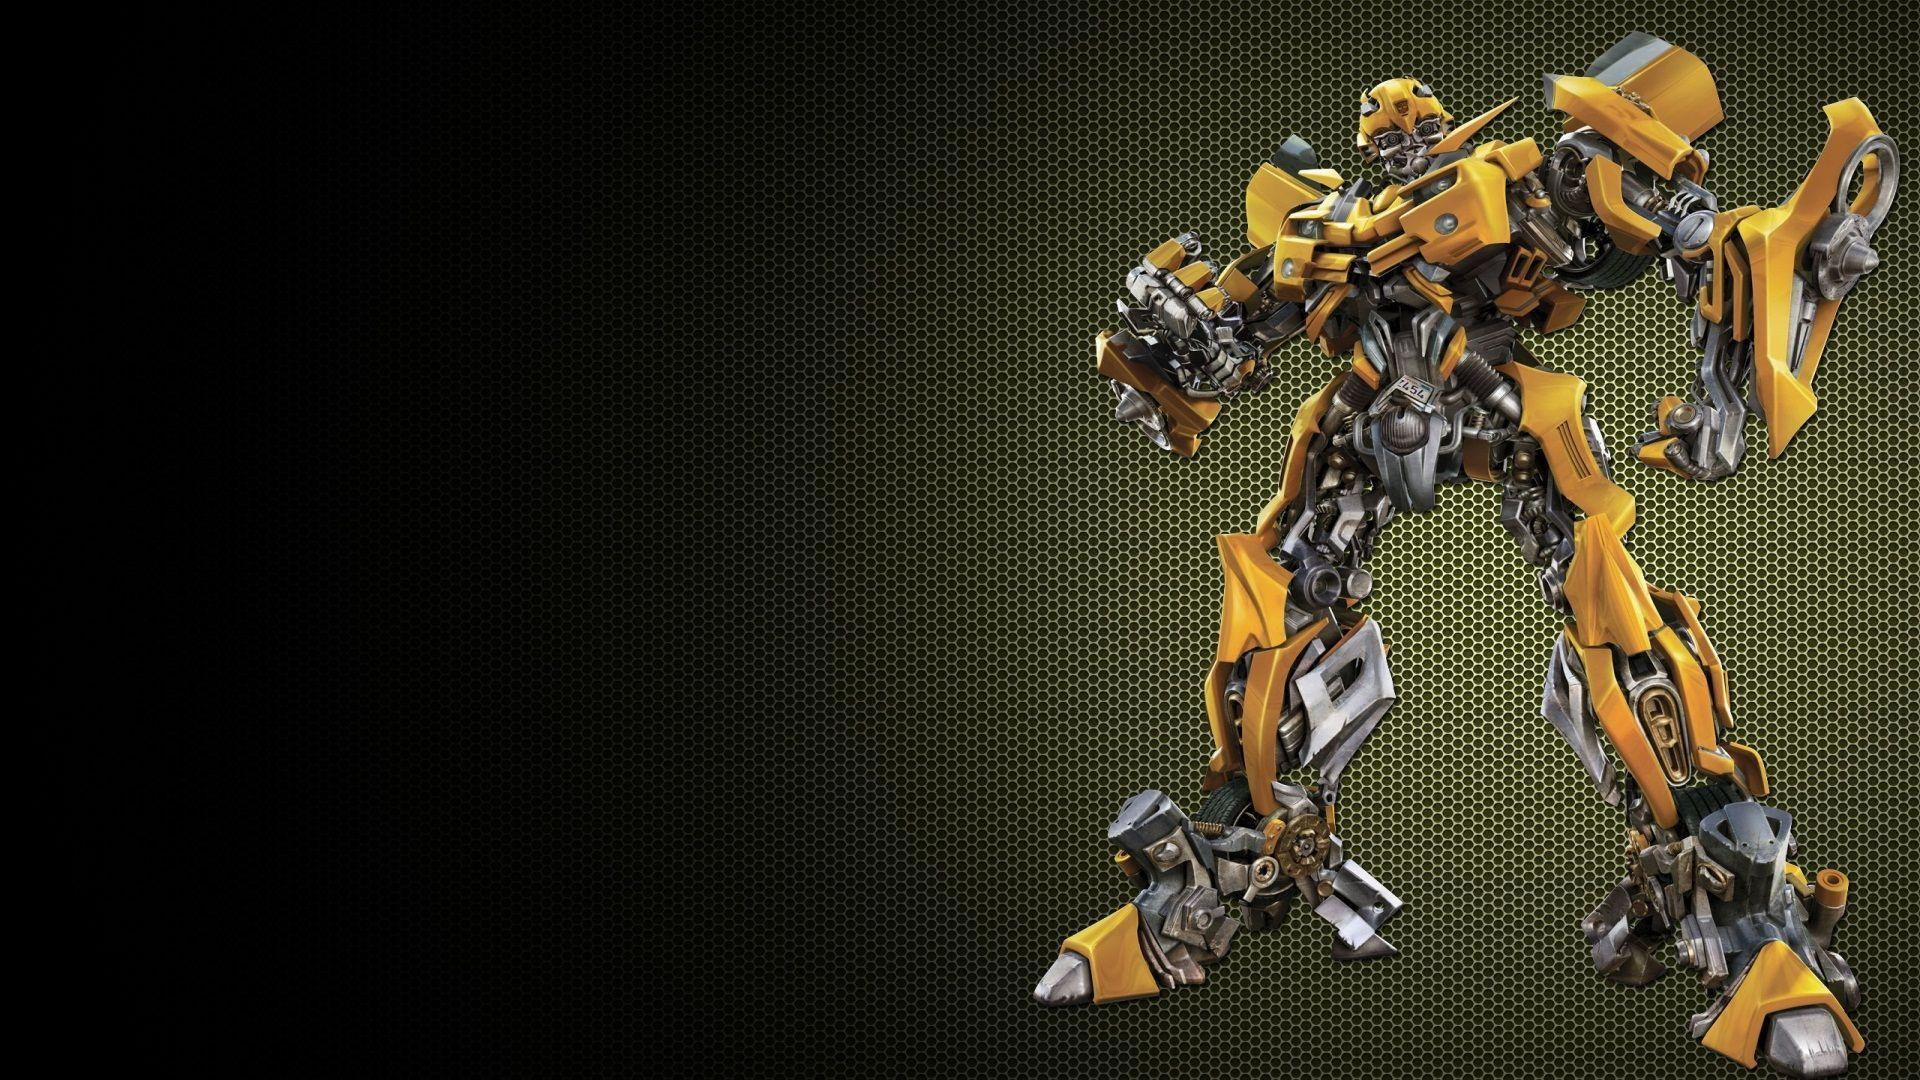 Anime 2014 Wallpaper Transformers Bumblebee Wallpapers Wallpaper Cave